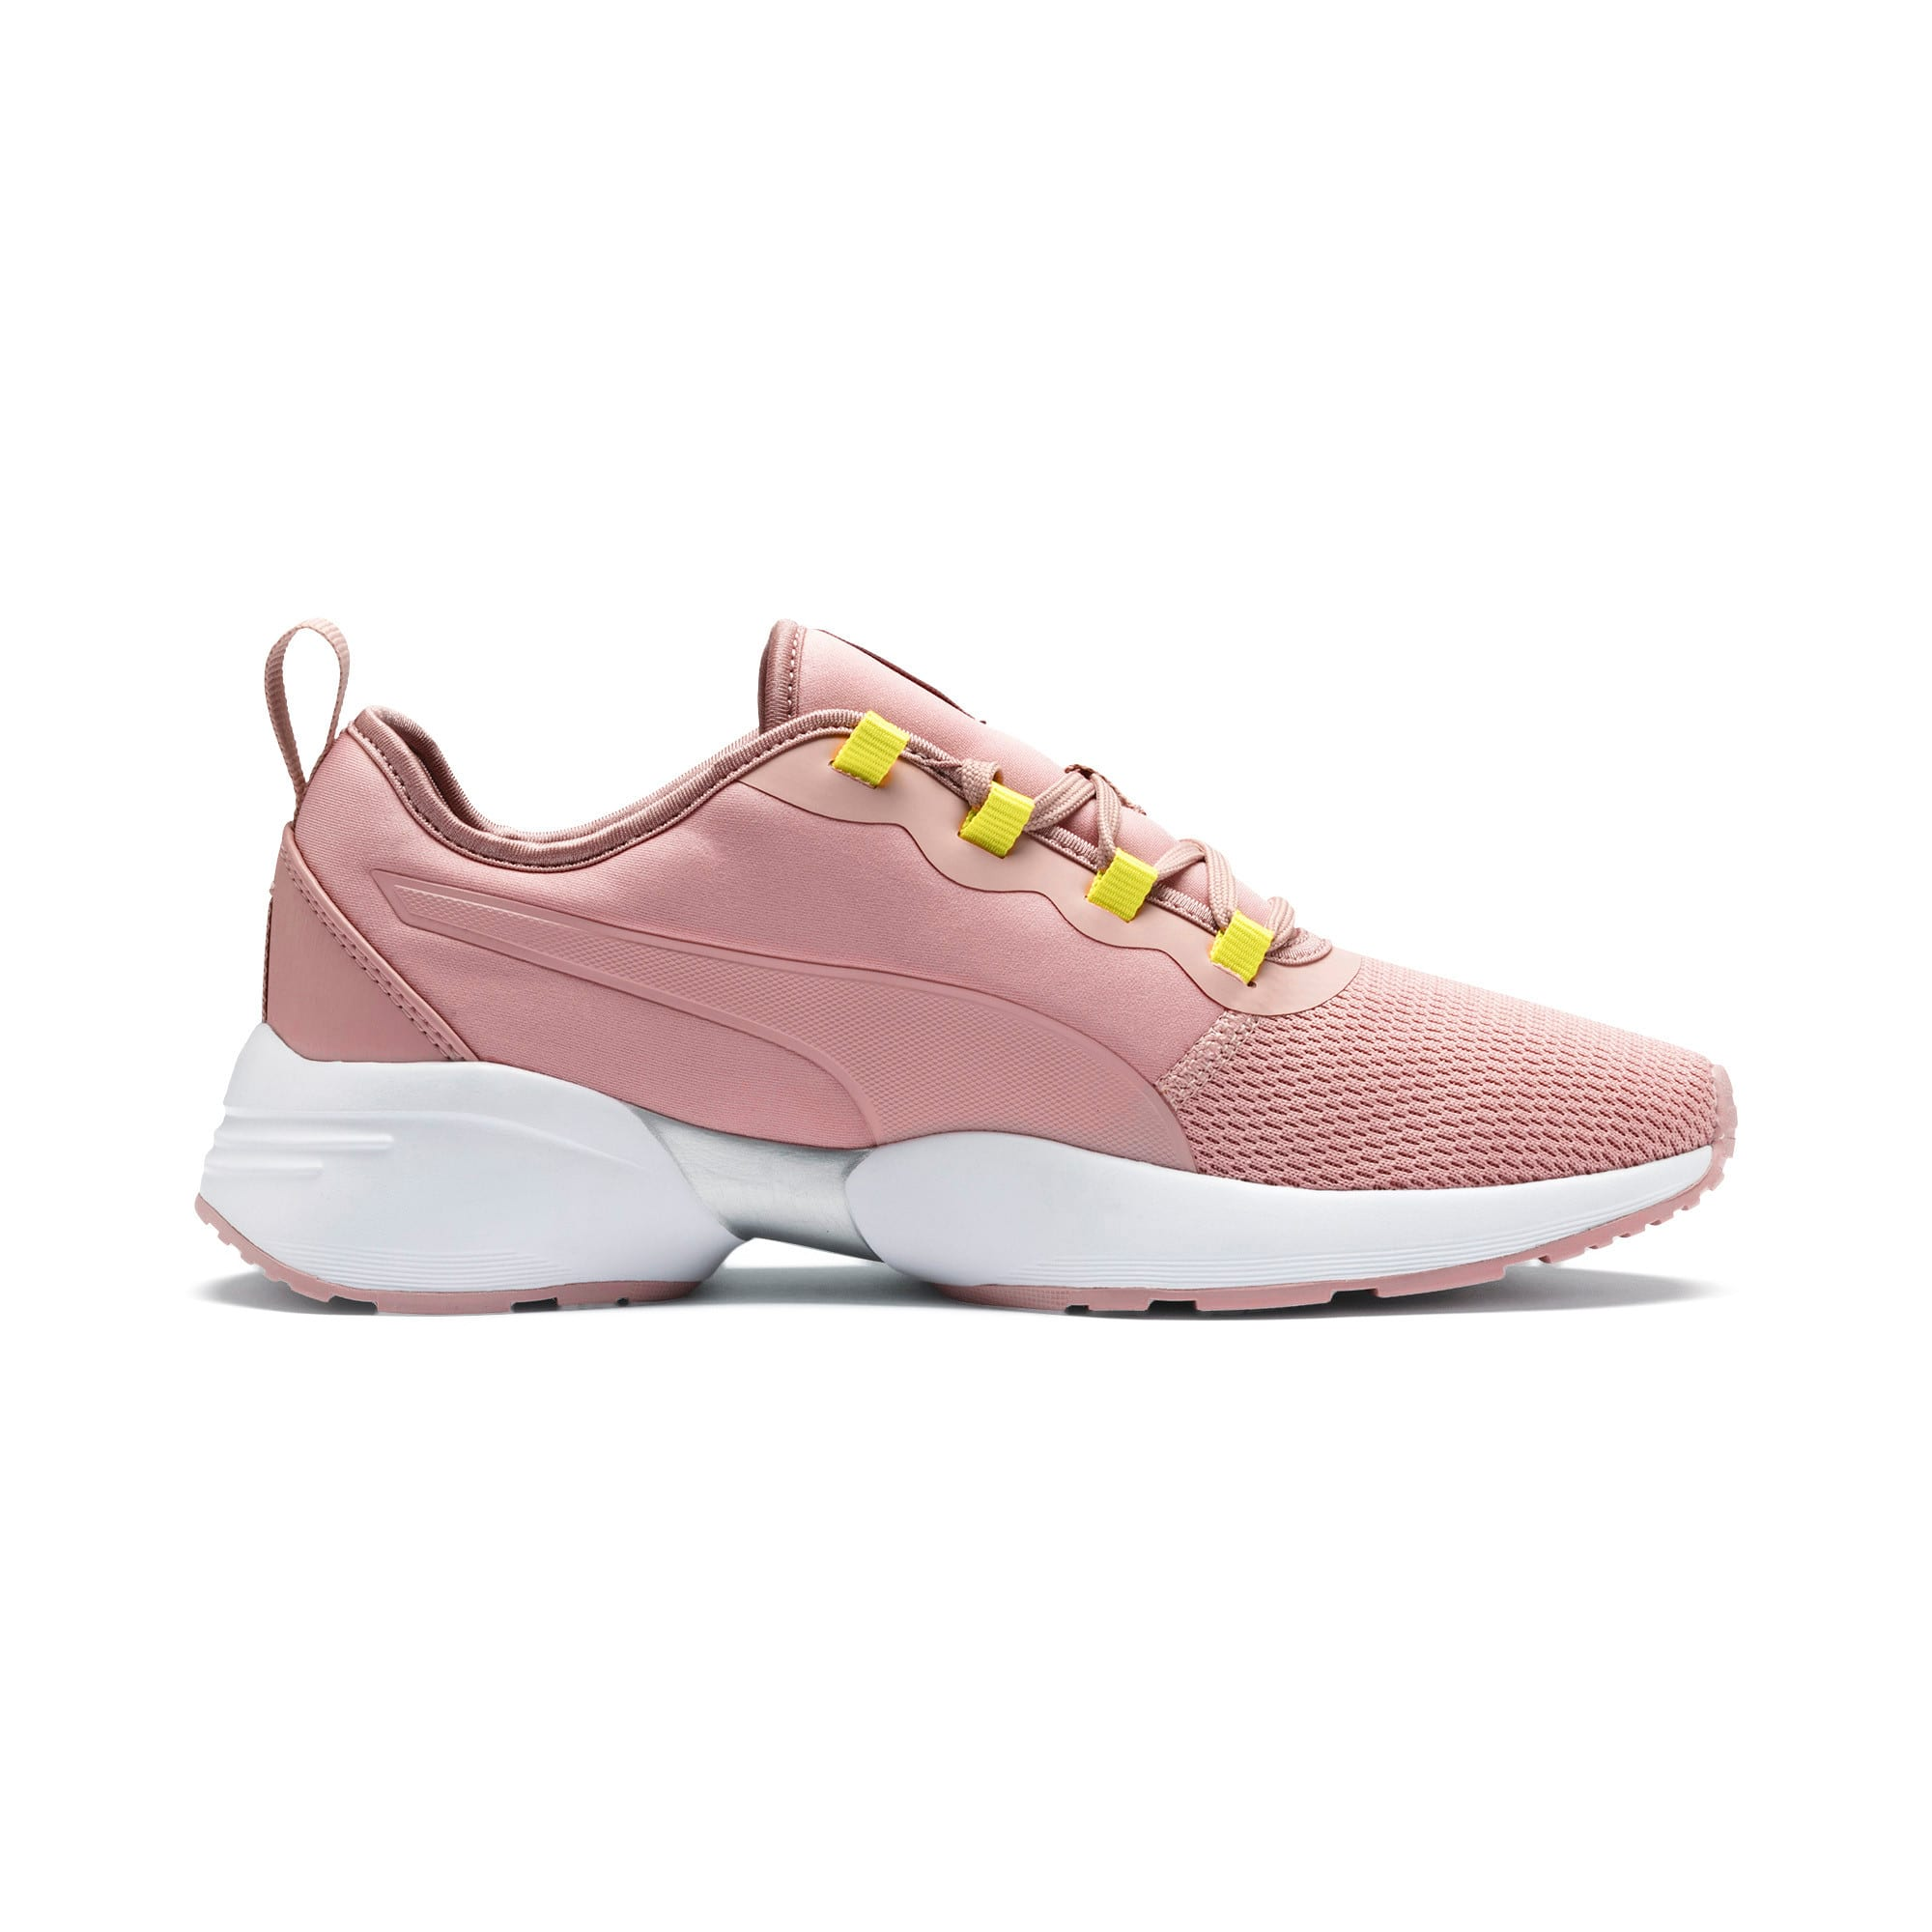 Thumbnail 6 of Sirena Sport Shift Women's Sneakers, Bridal Rose-Yellow Alert, medium